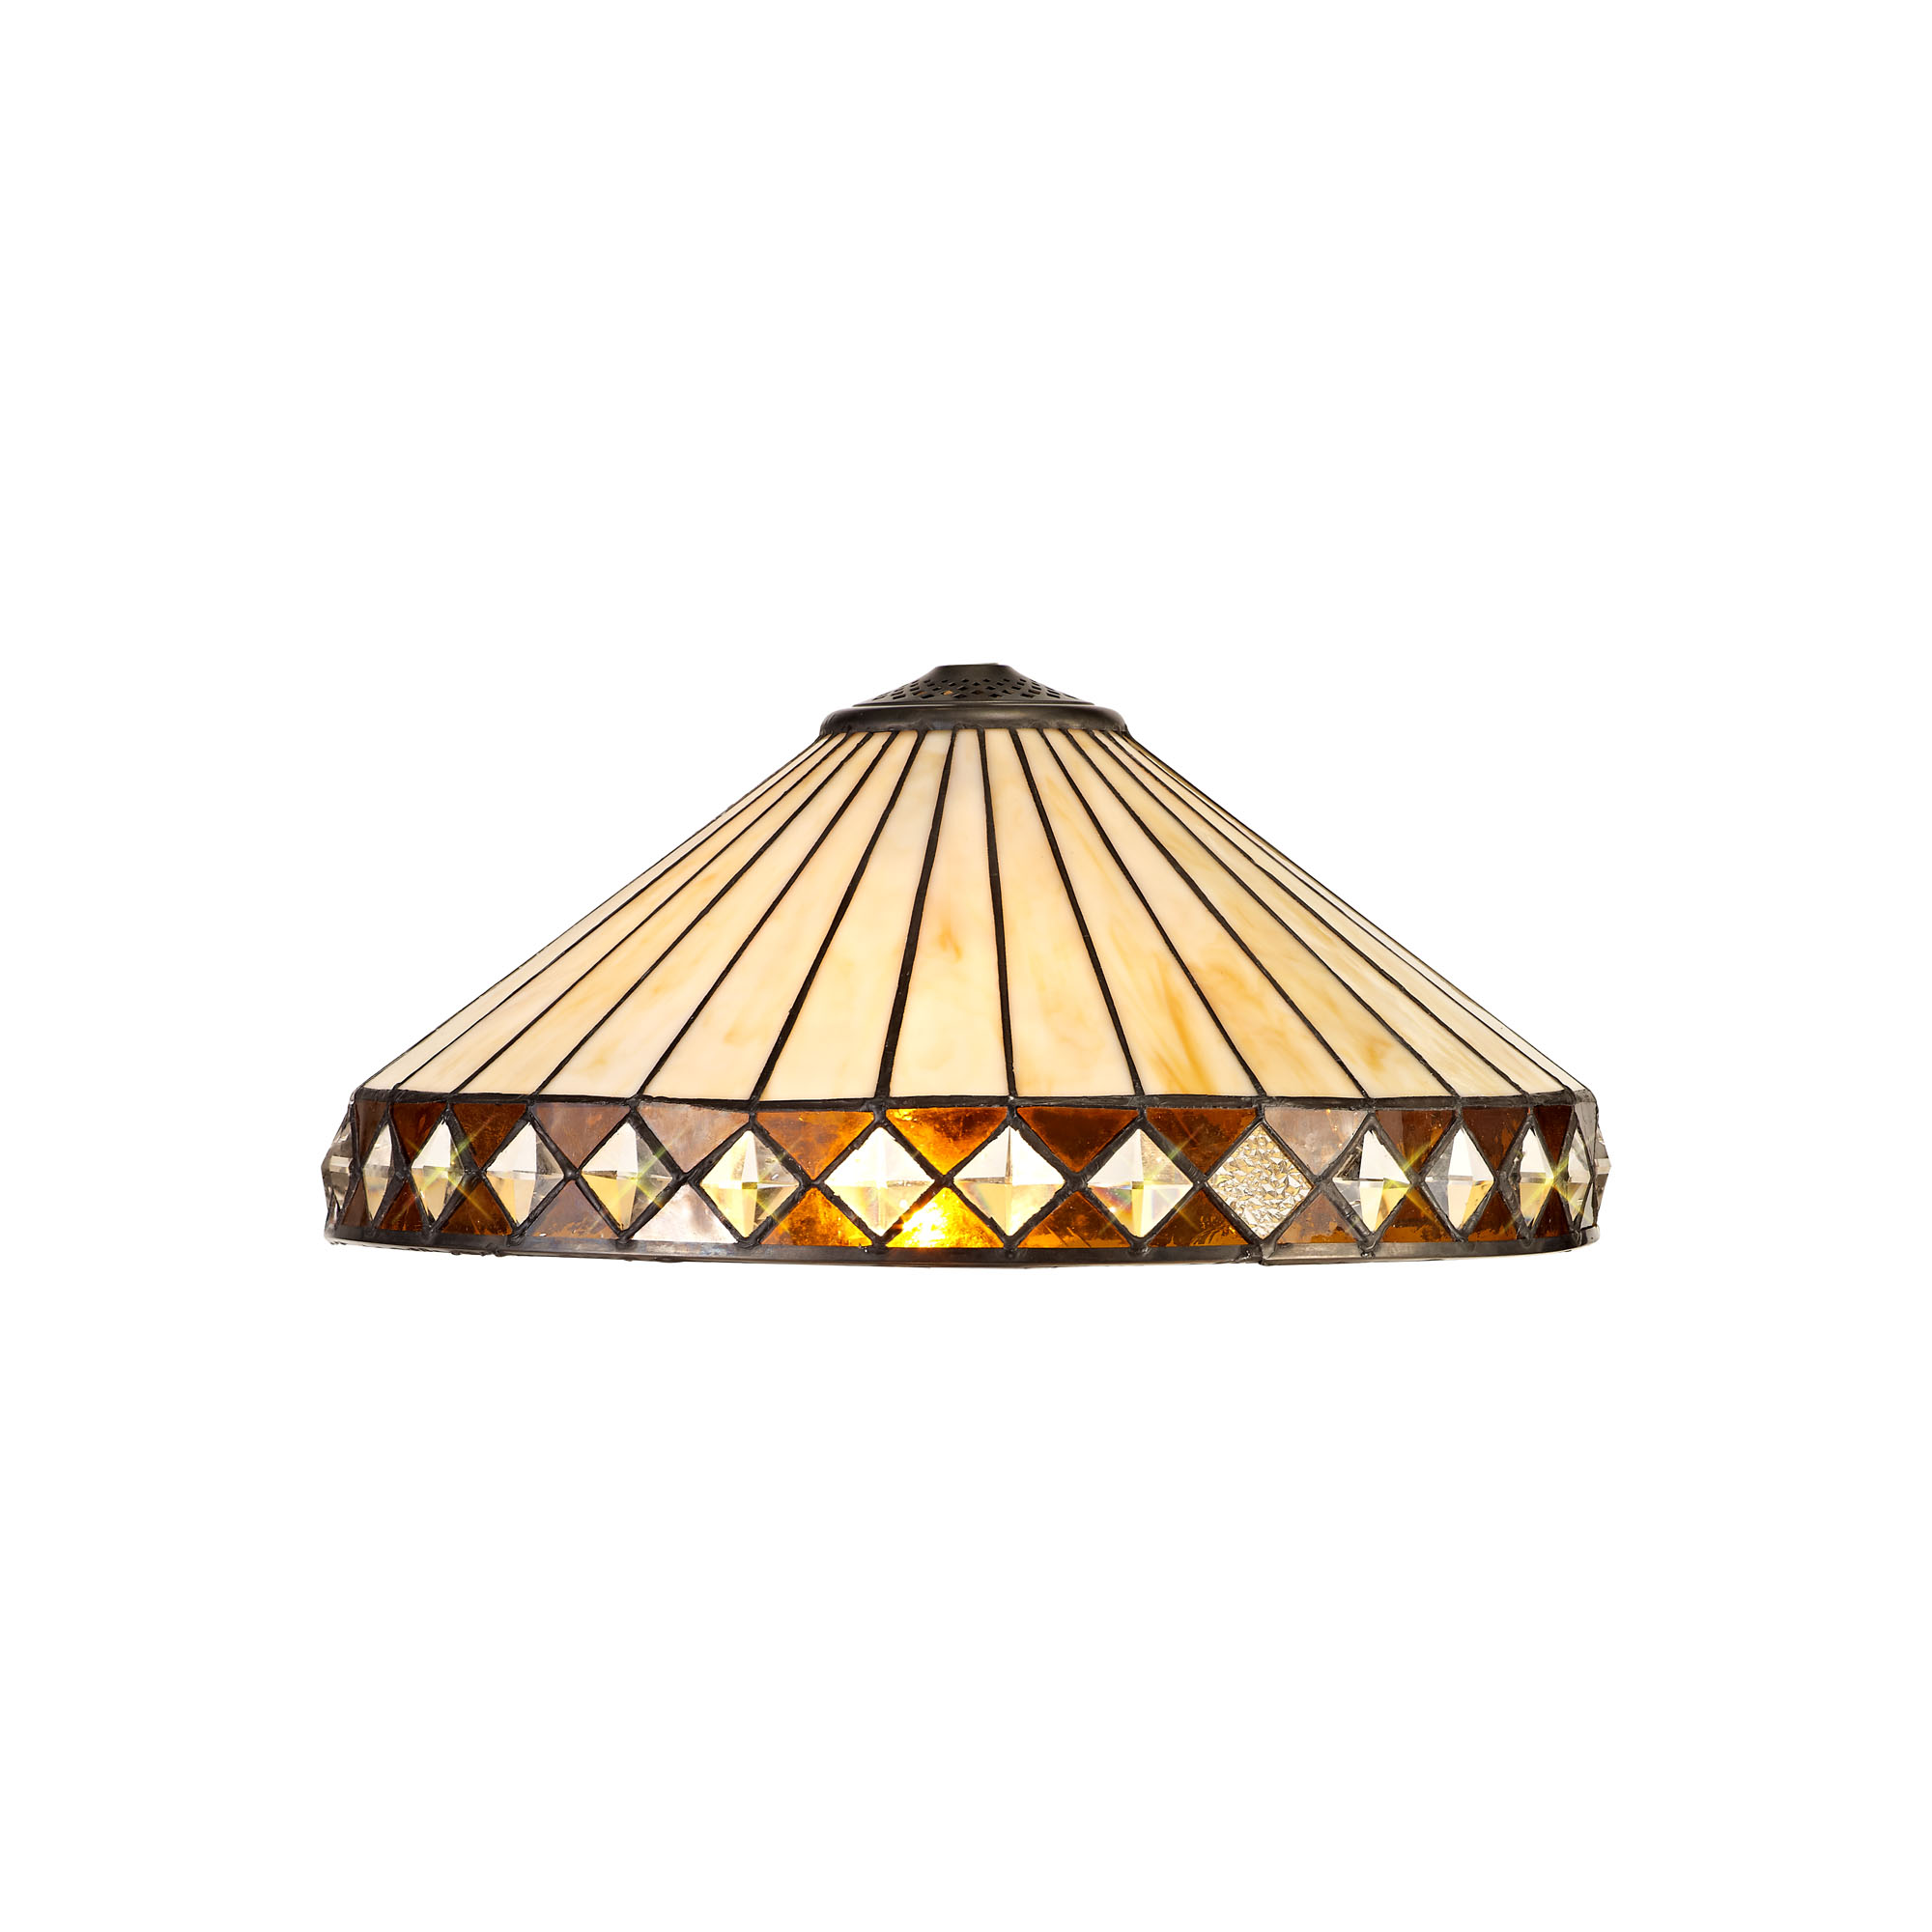 2 Light Downlighter Pendant E27 With 40cm Tiffany Shade, Amber/C/Crystal/Aged Antique Brass